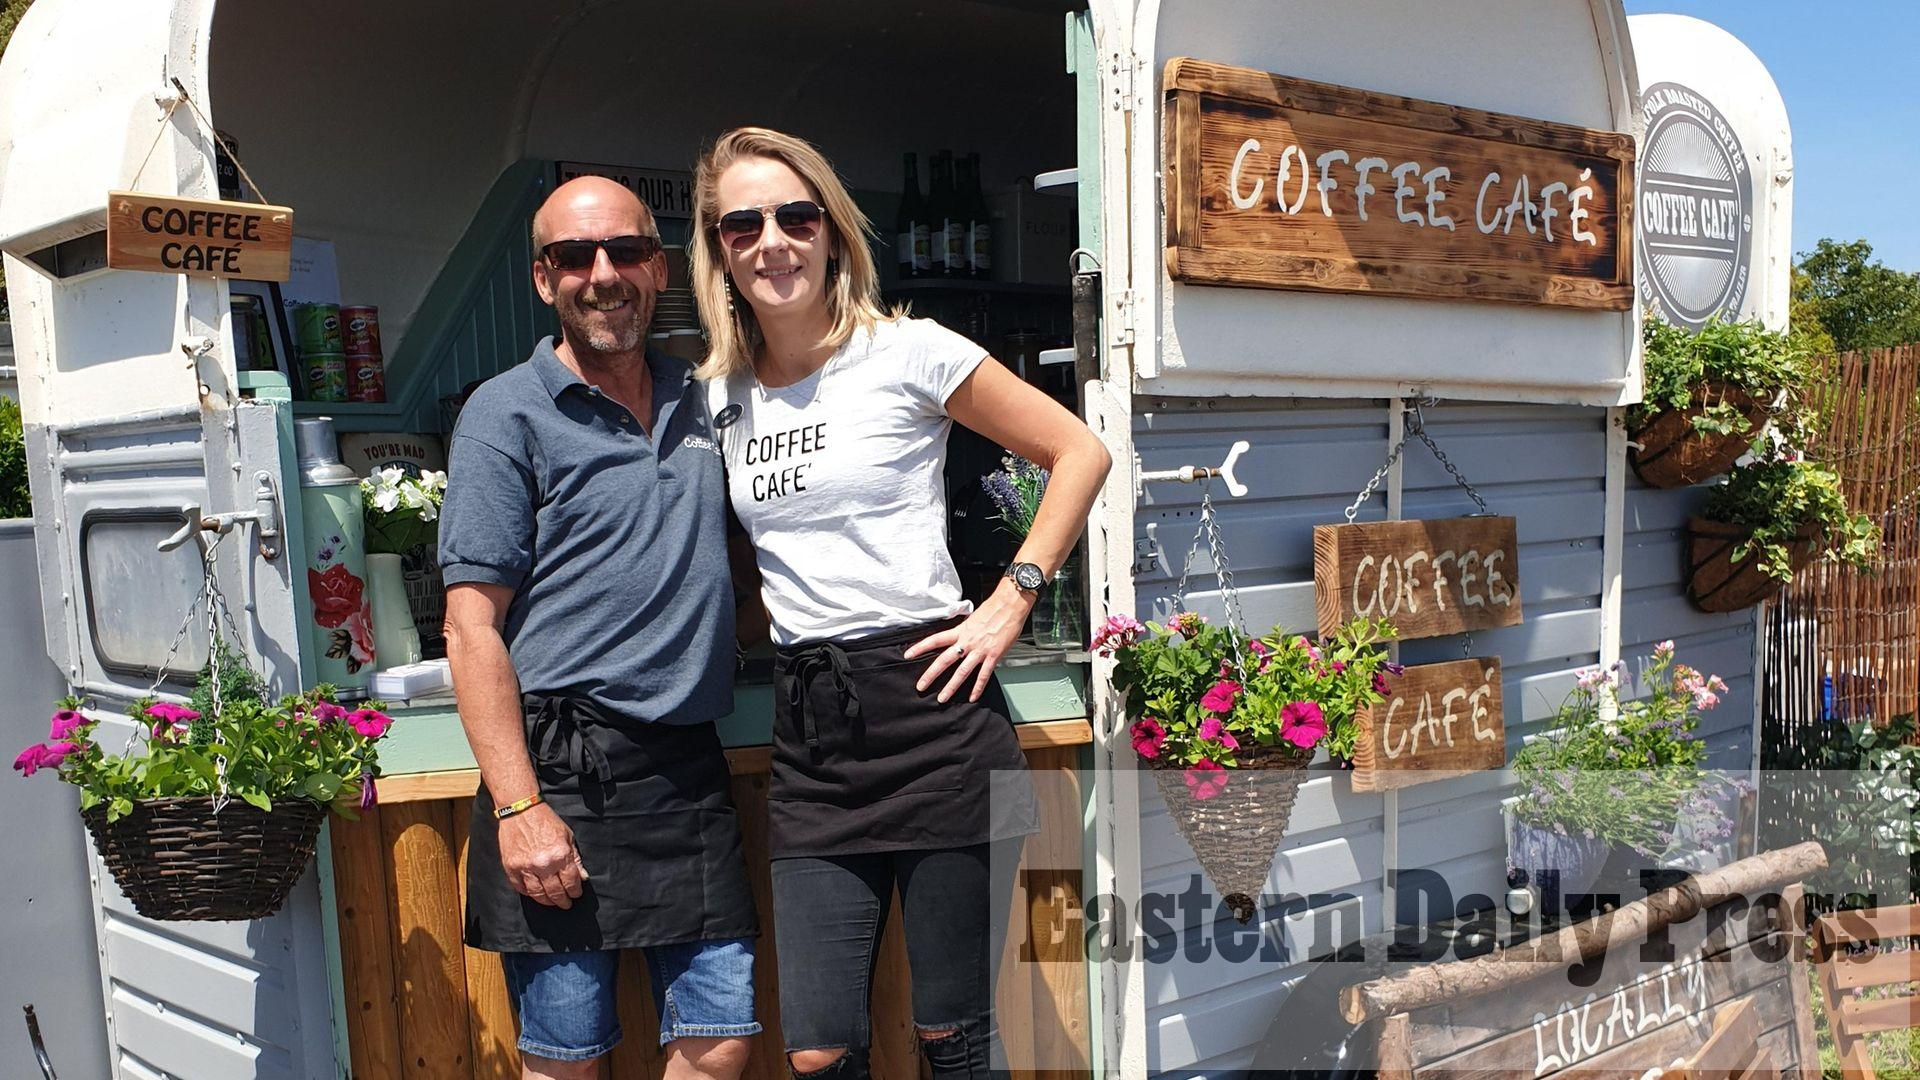 How mobile coffee cafe built in vintage horse trailer survived pandemic